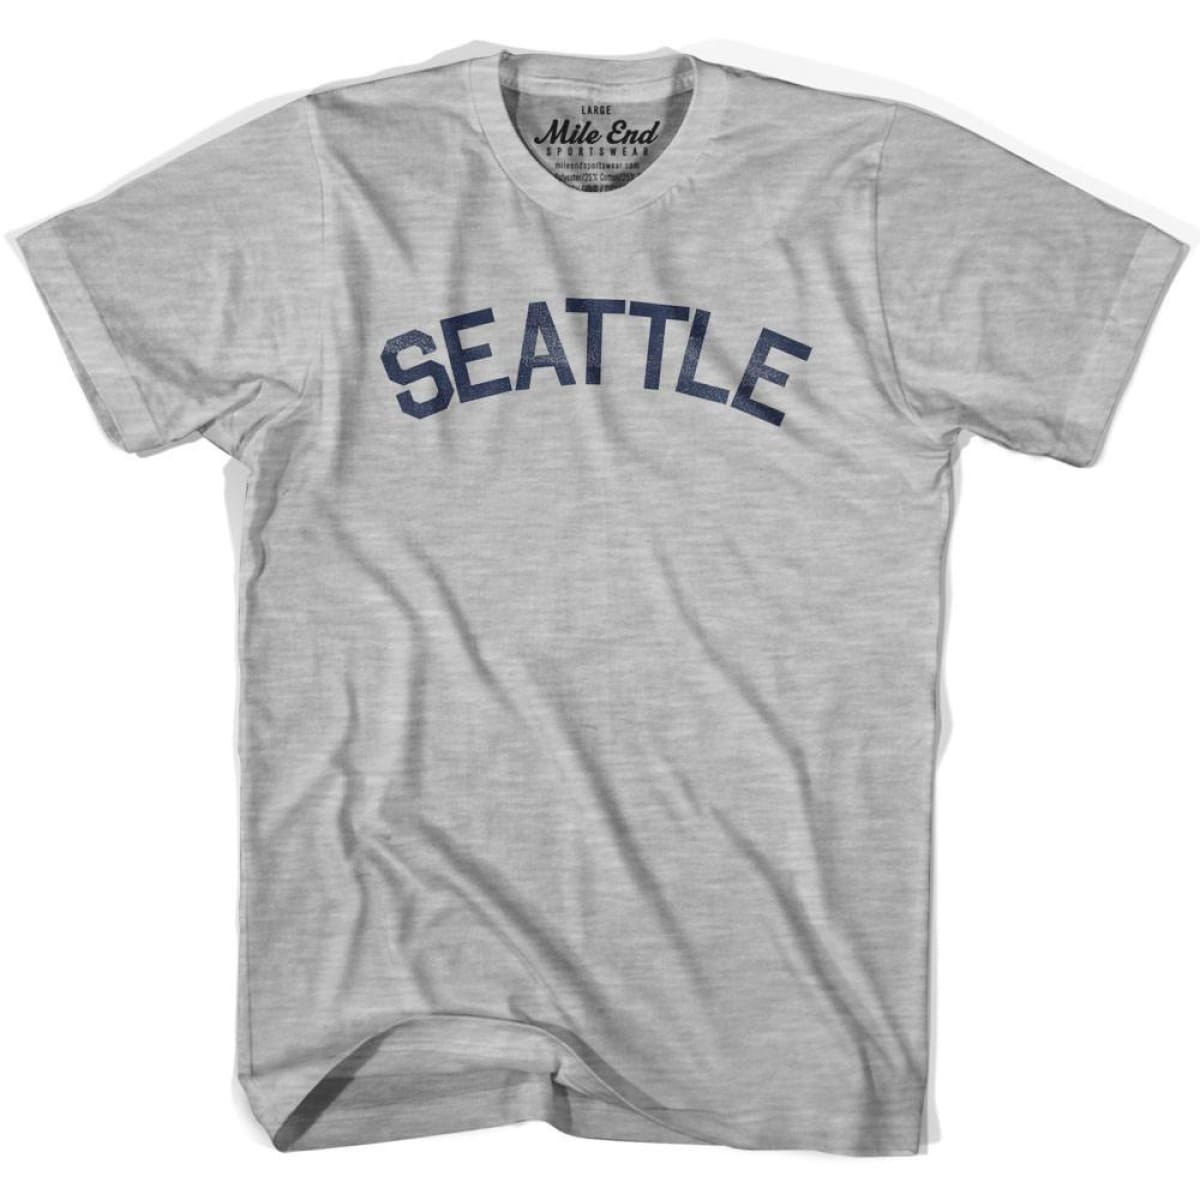 Seattle City Vintage T-shirt - Grey Heather / Youth X-Small - Mile End City